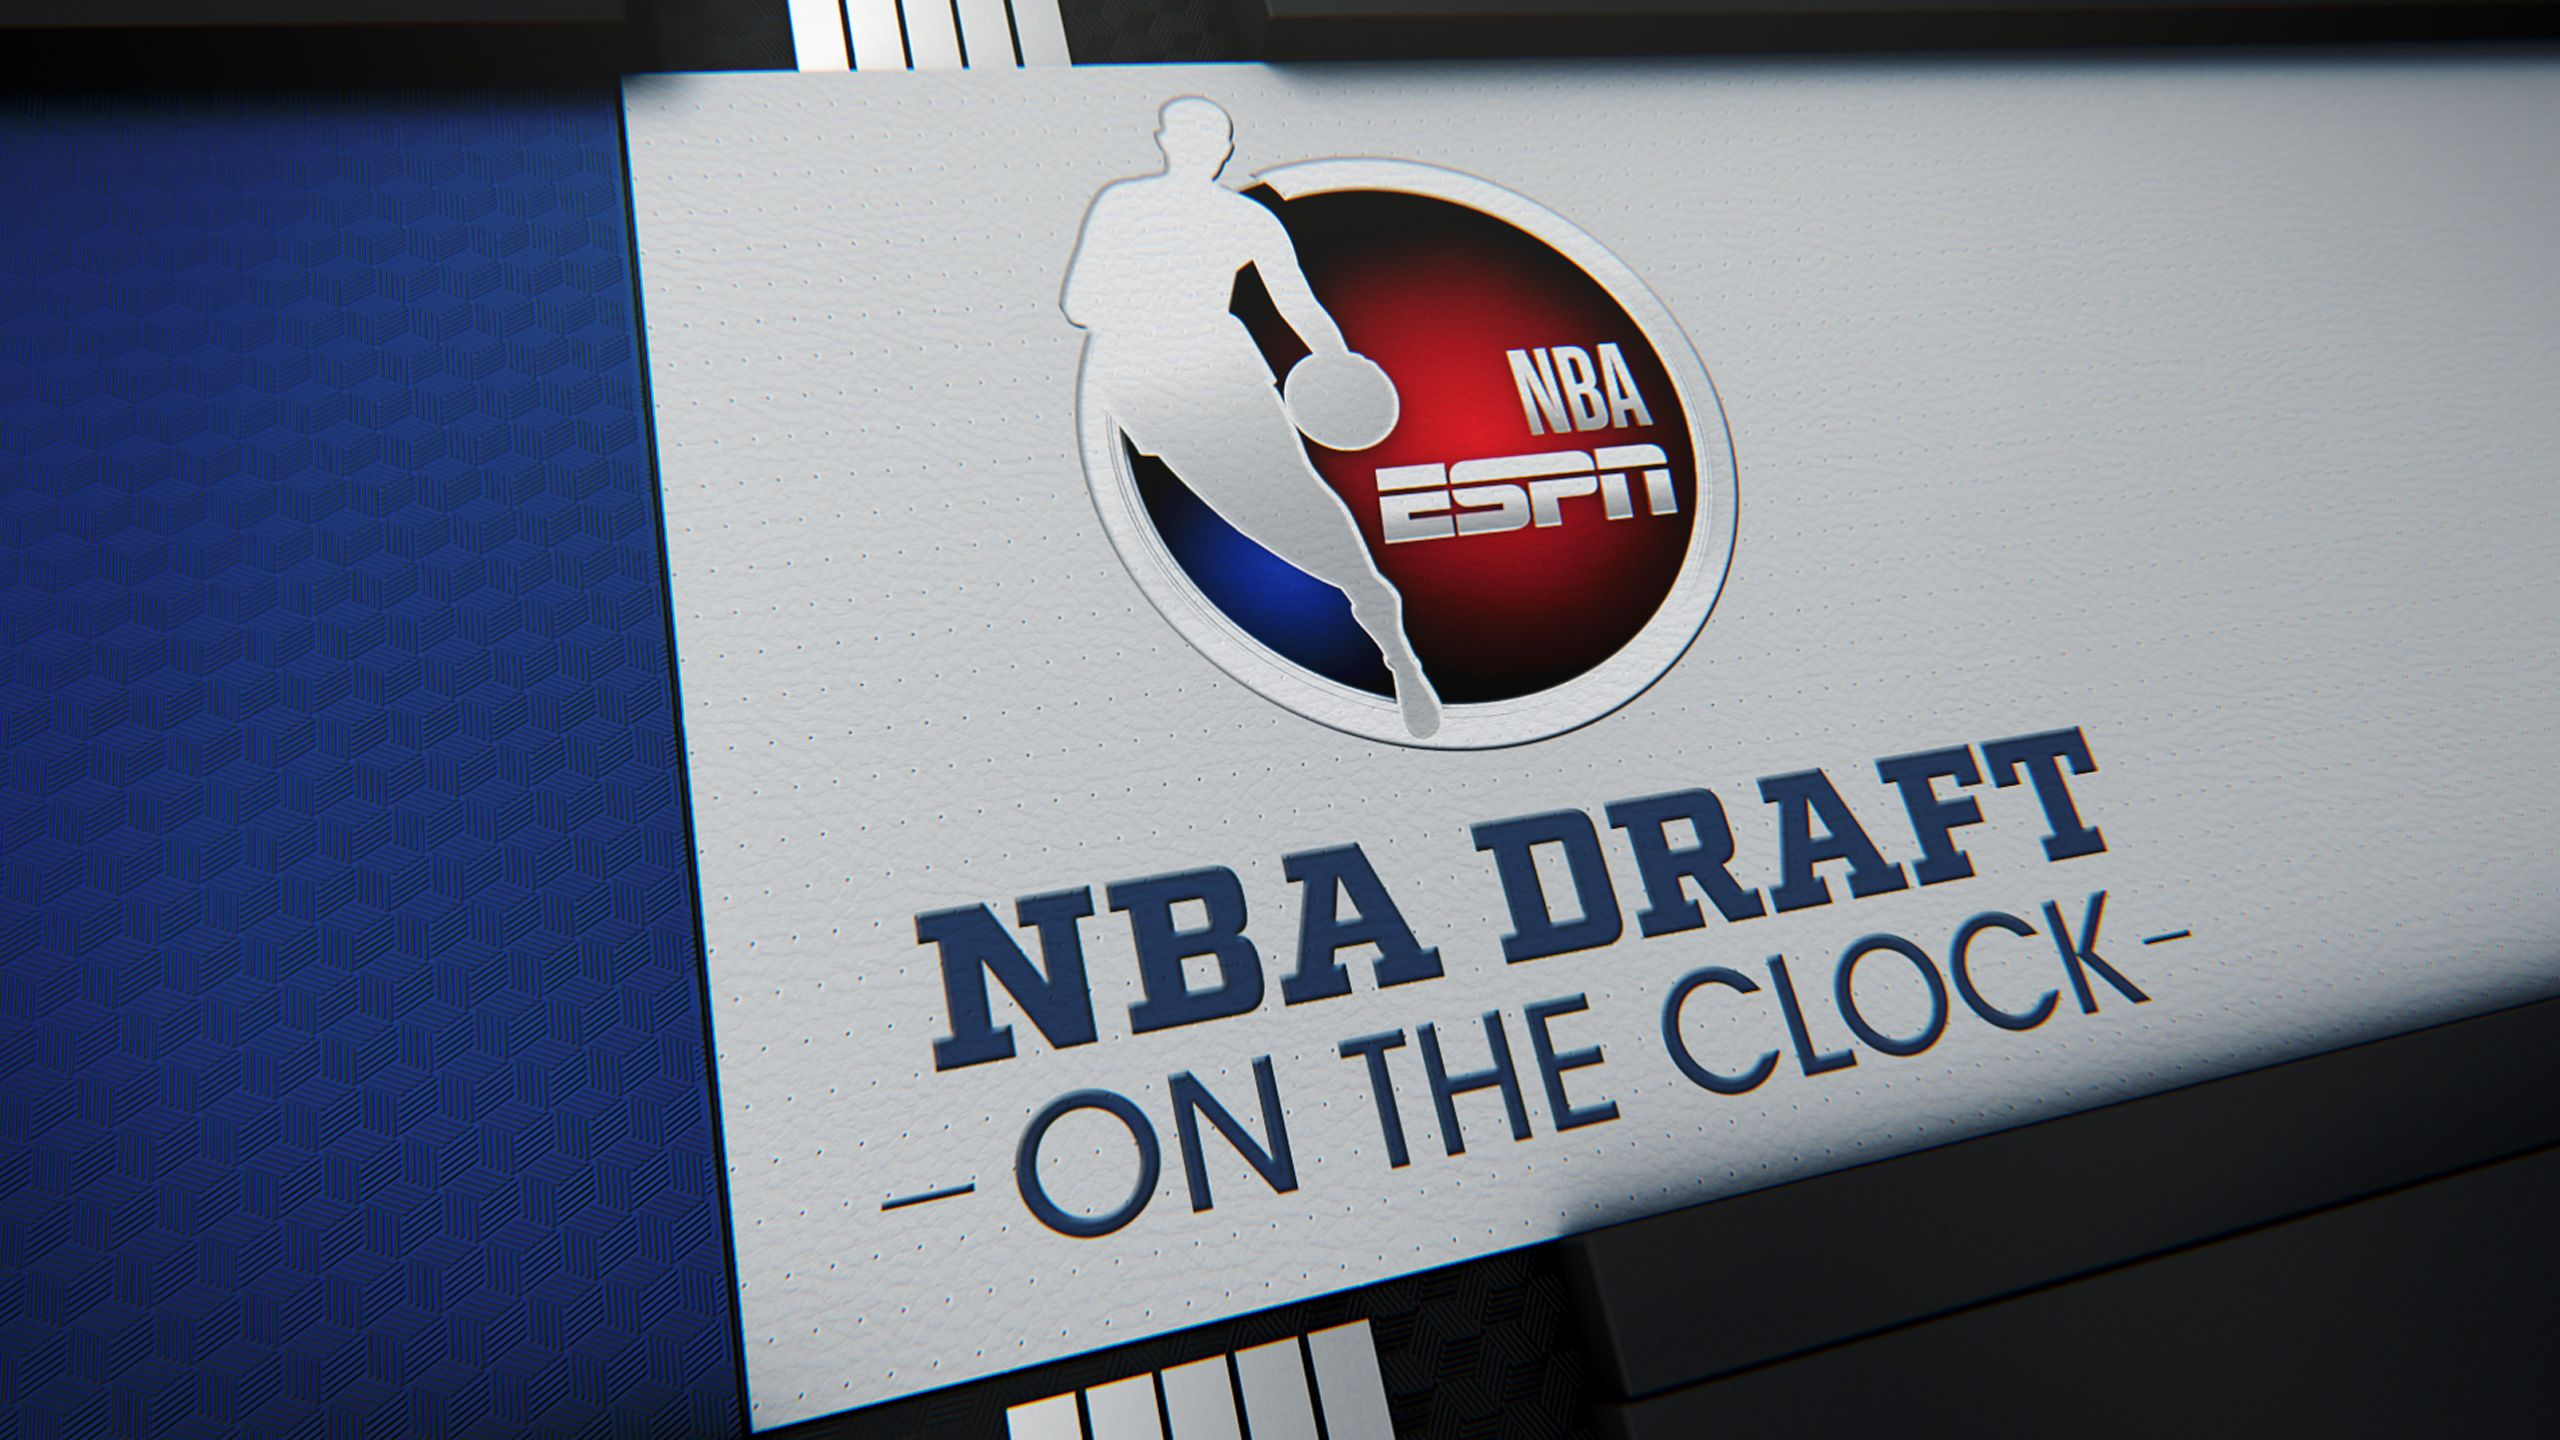 NBA Draft: On The Clock No. 2